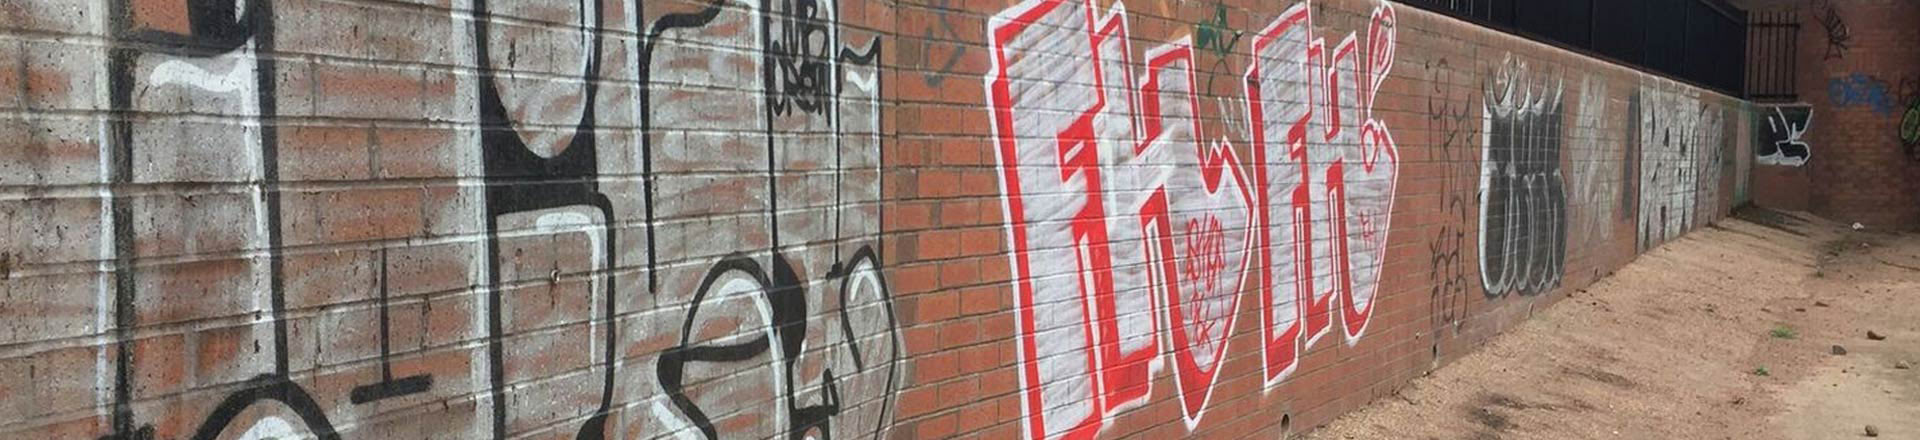 Graffiti Removal in Manchester and the Northwest